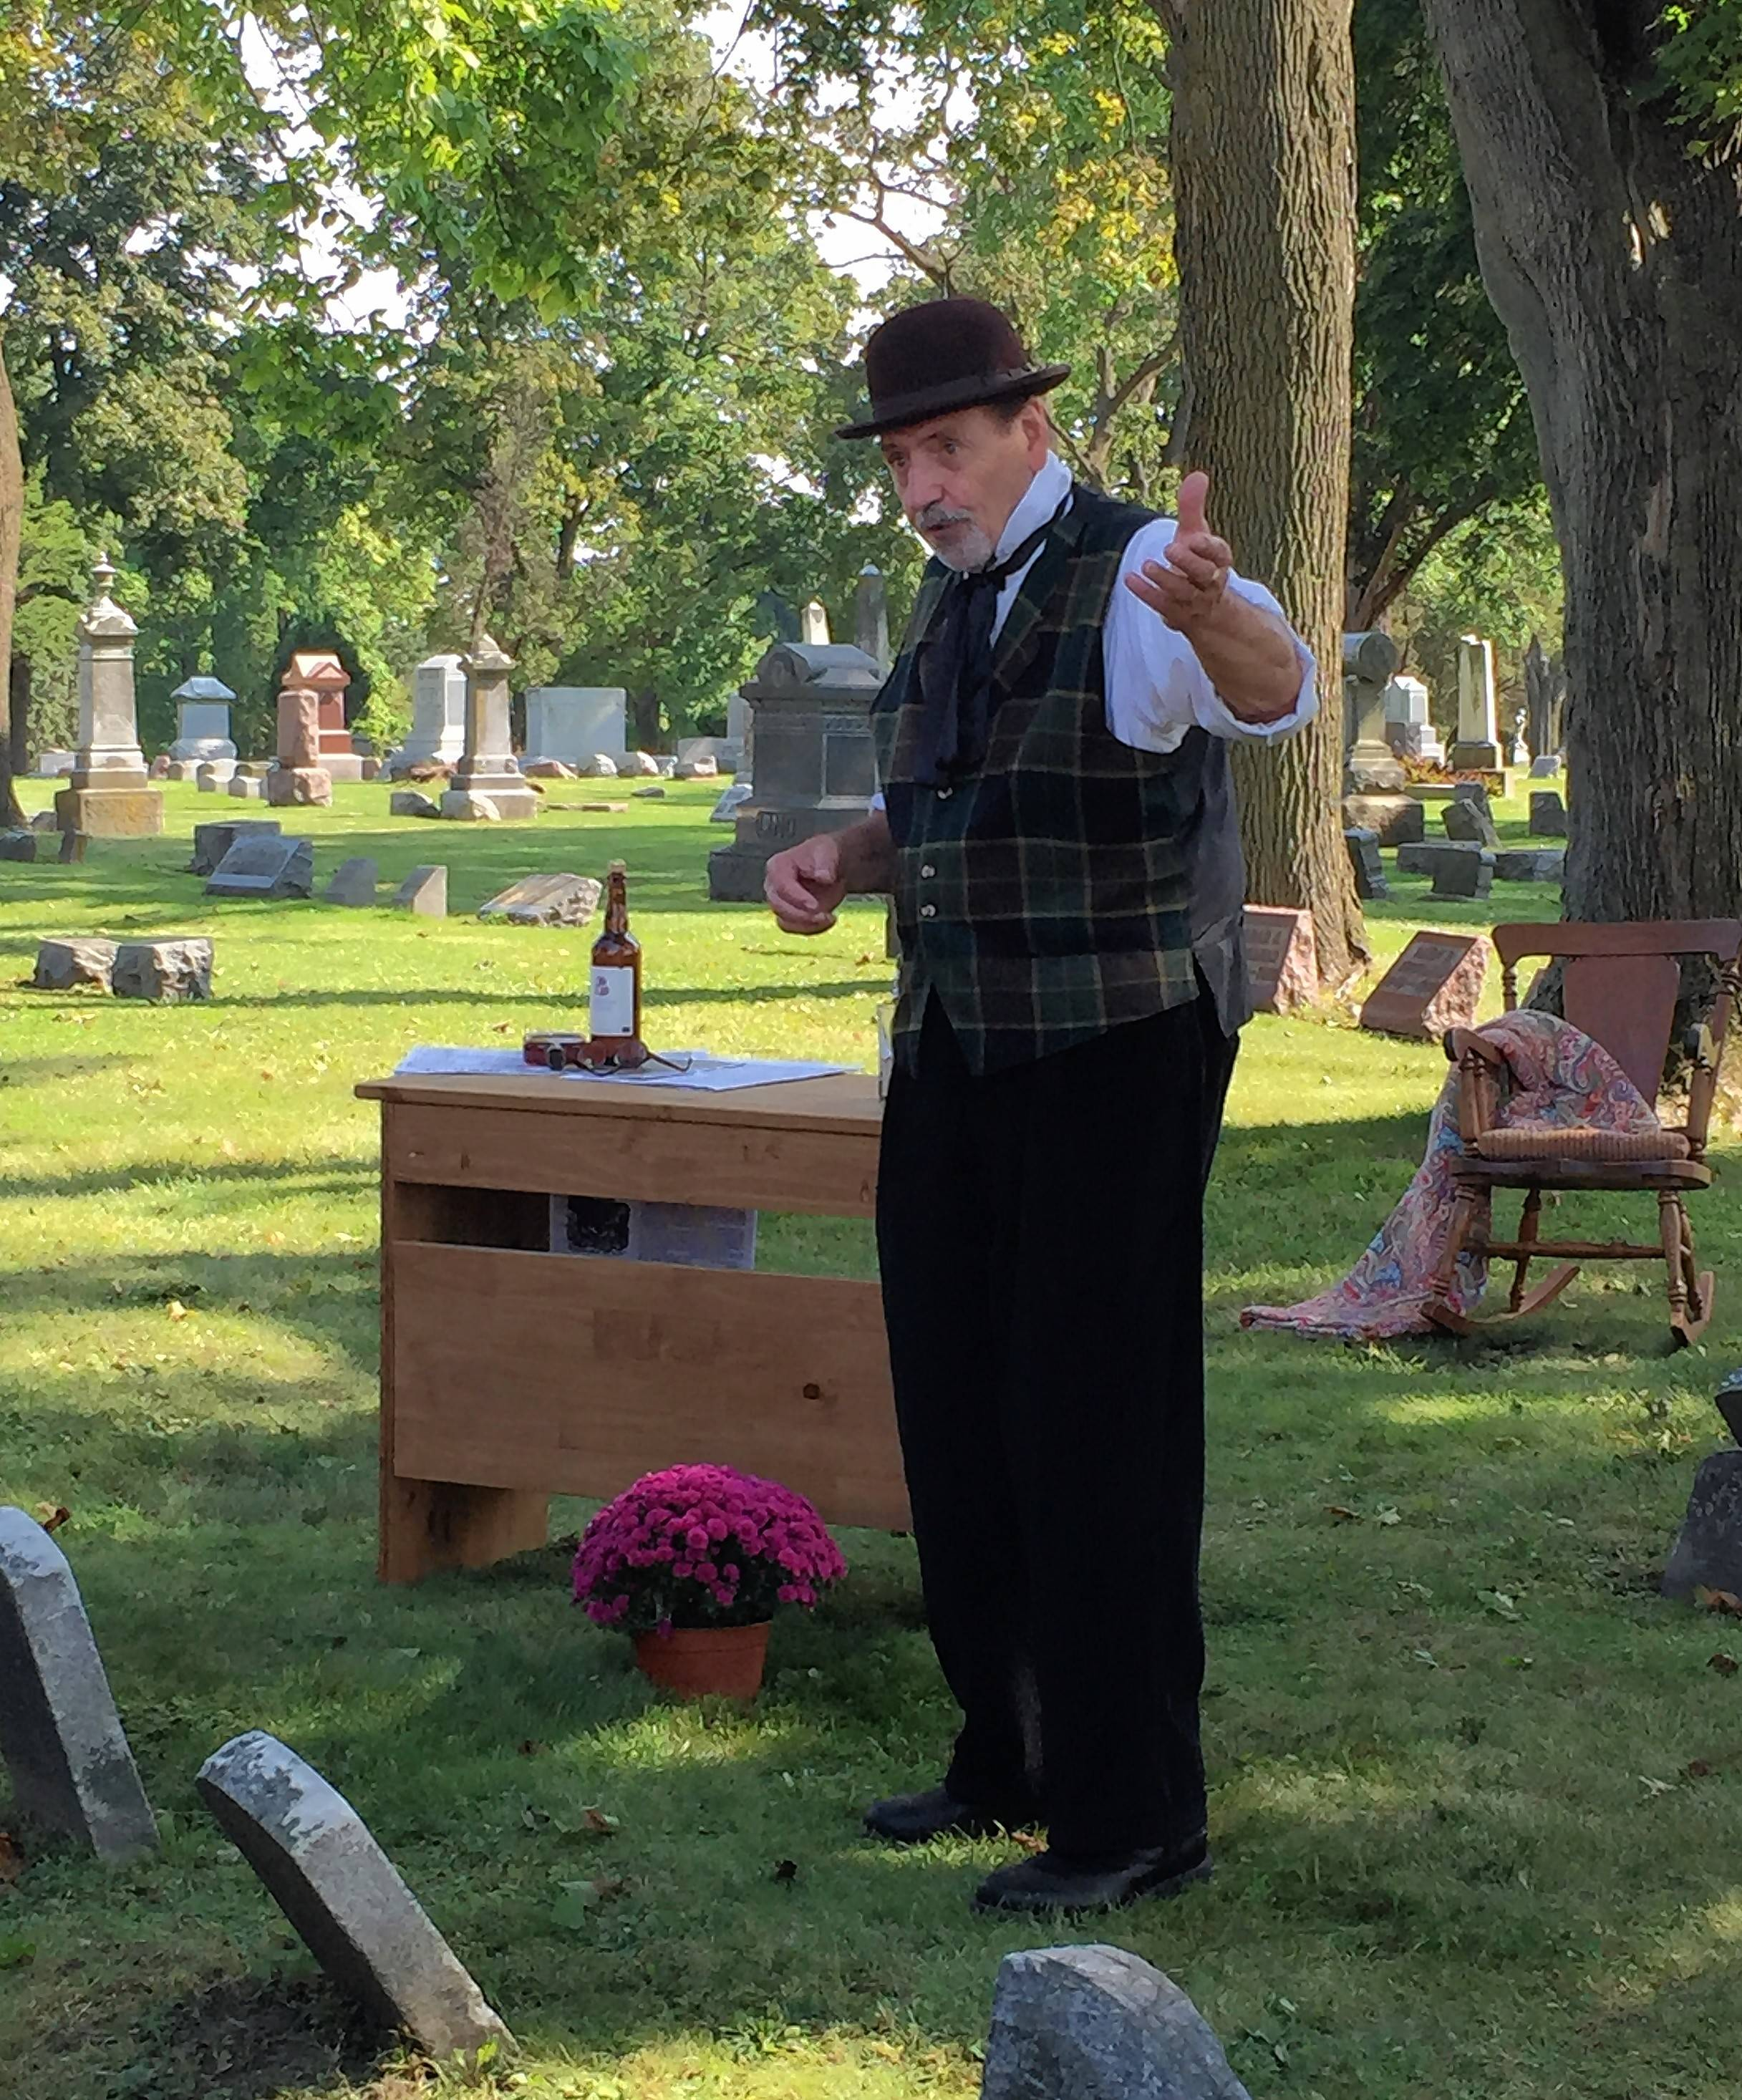 Actor August Conte portrays Joseph Pabst at the 29th annual Cemetery Walk in Elgin's Bluff City Cemetery. Conte returns to this year's walk to portray Gilbert Snow, inventor of the self-oiling windmill and founder of the Elgin Wind, Power and Pump Co.